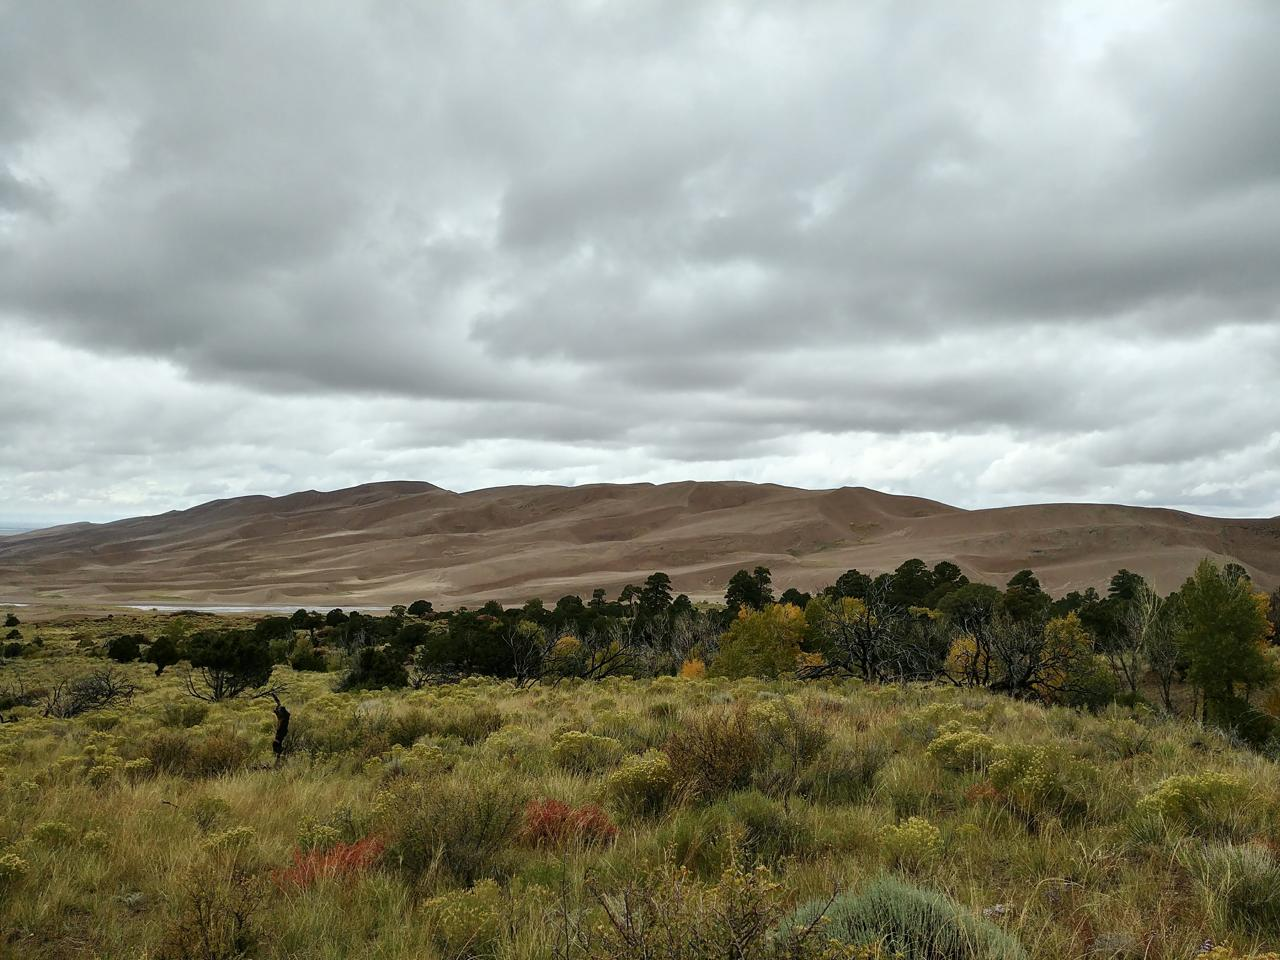 parchi del colorado great sand dunes